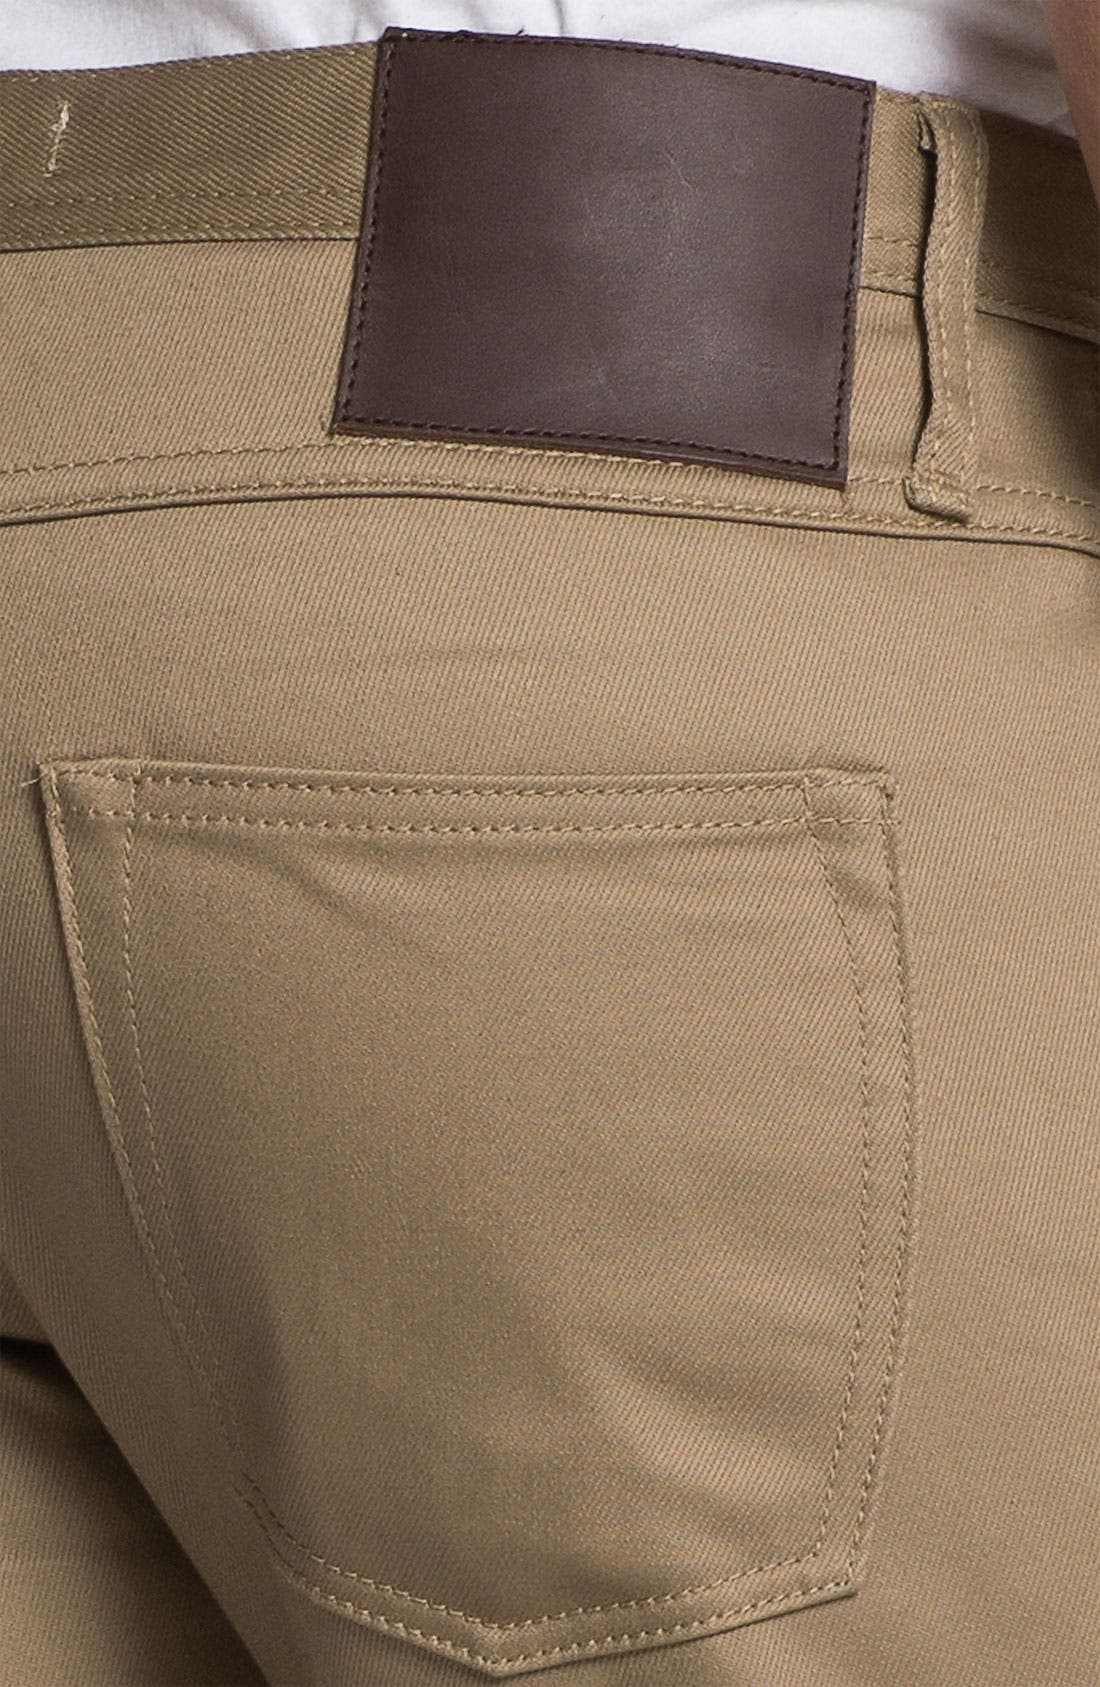 Alternate Image 3  - The Unbranded Brand 'UB307' Straight Leg Selvedge Chinos (Online Exclusive)